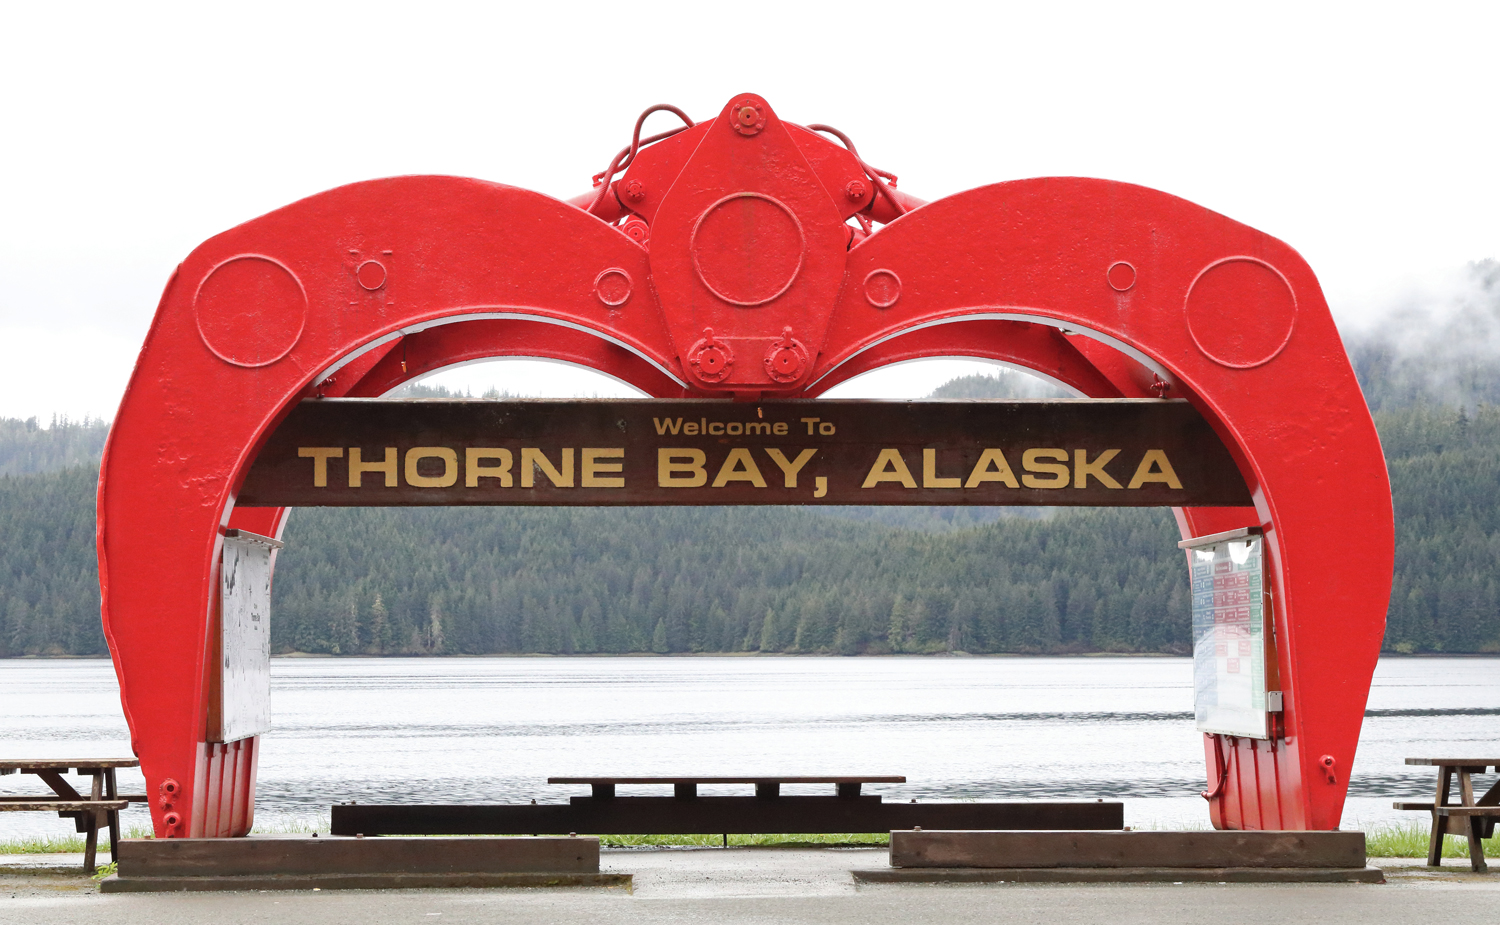 Thorne Bay Alaska logging grapple the claw Prince of Wales Island